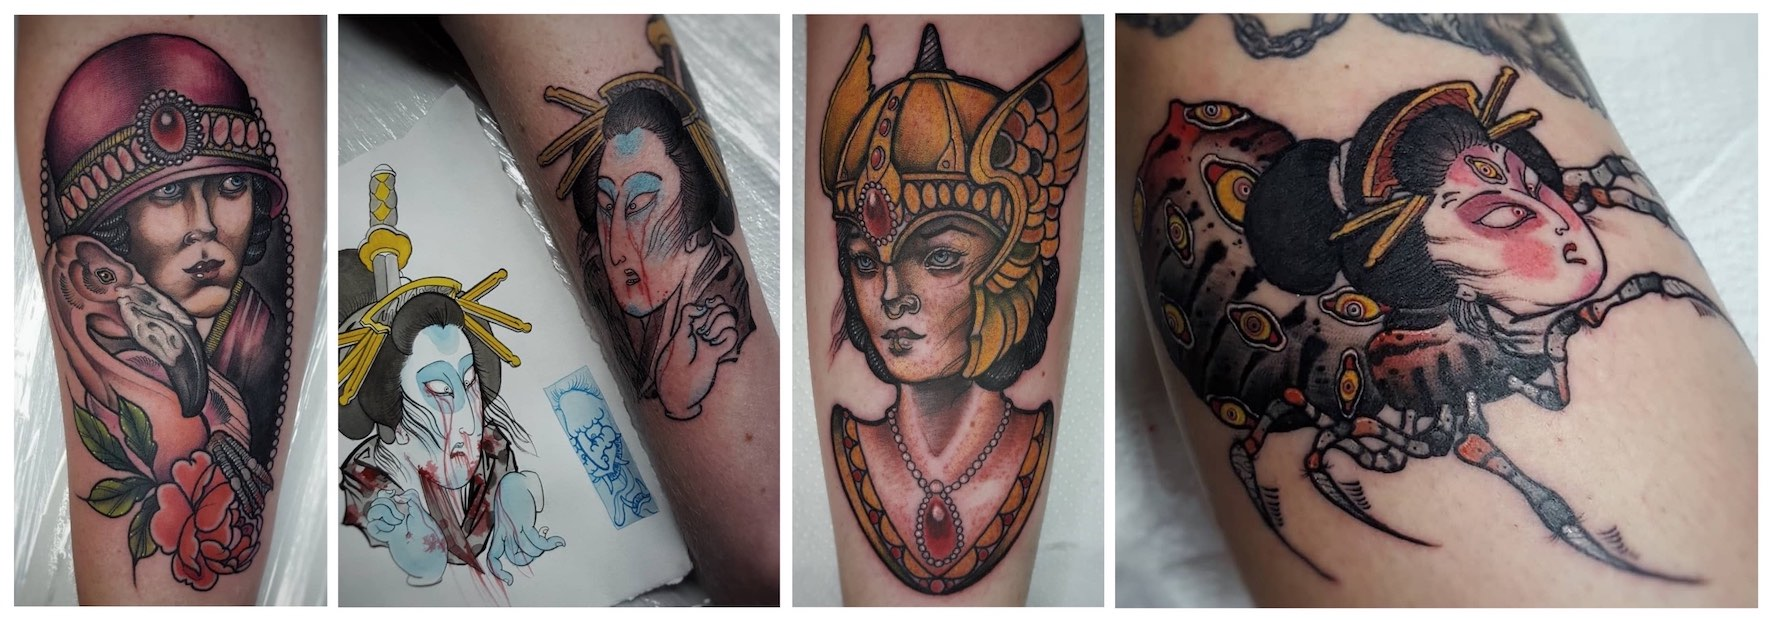 New Traditional tattoos done by Daniel Forster